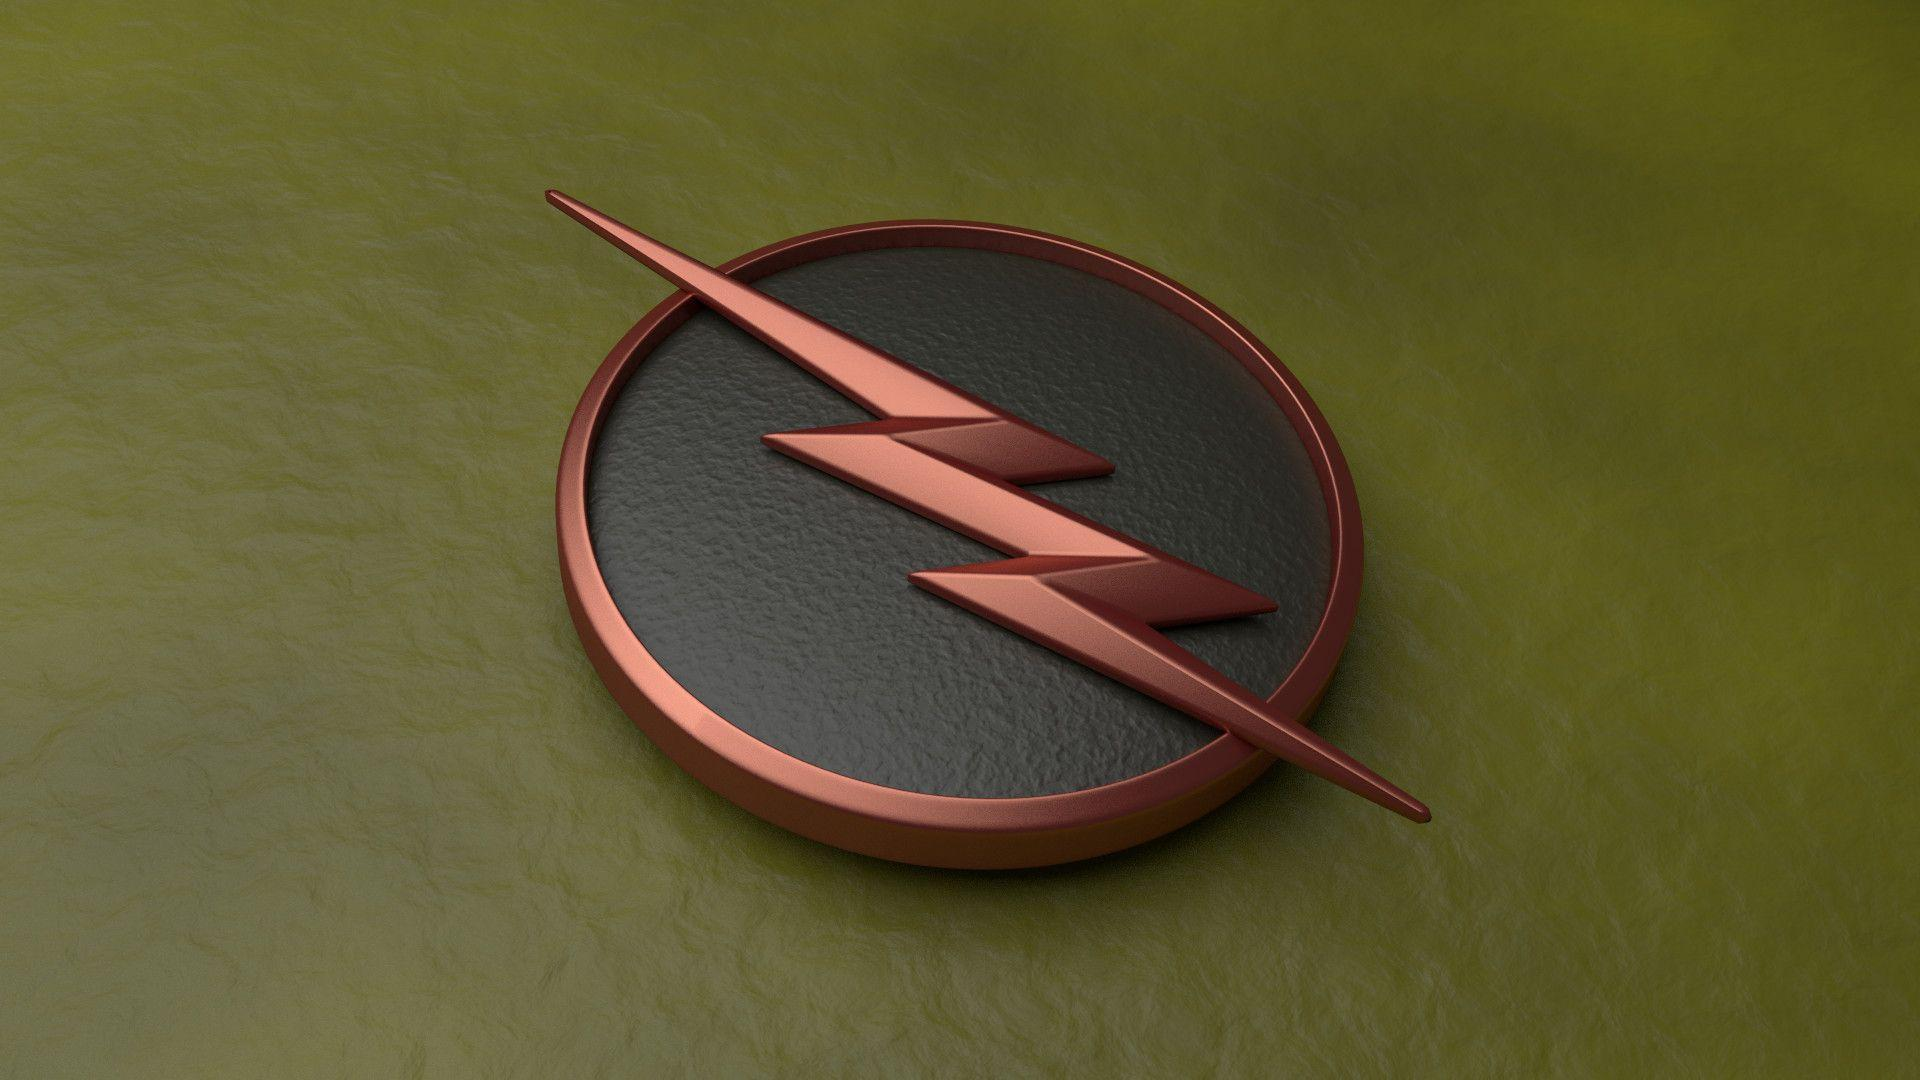 Inspired by /u/IcedJack, I also made the Flash logo in Blender